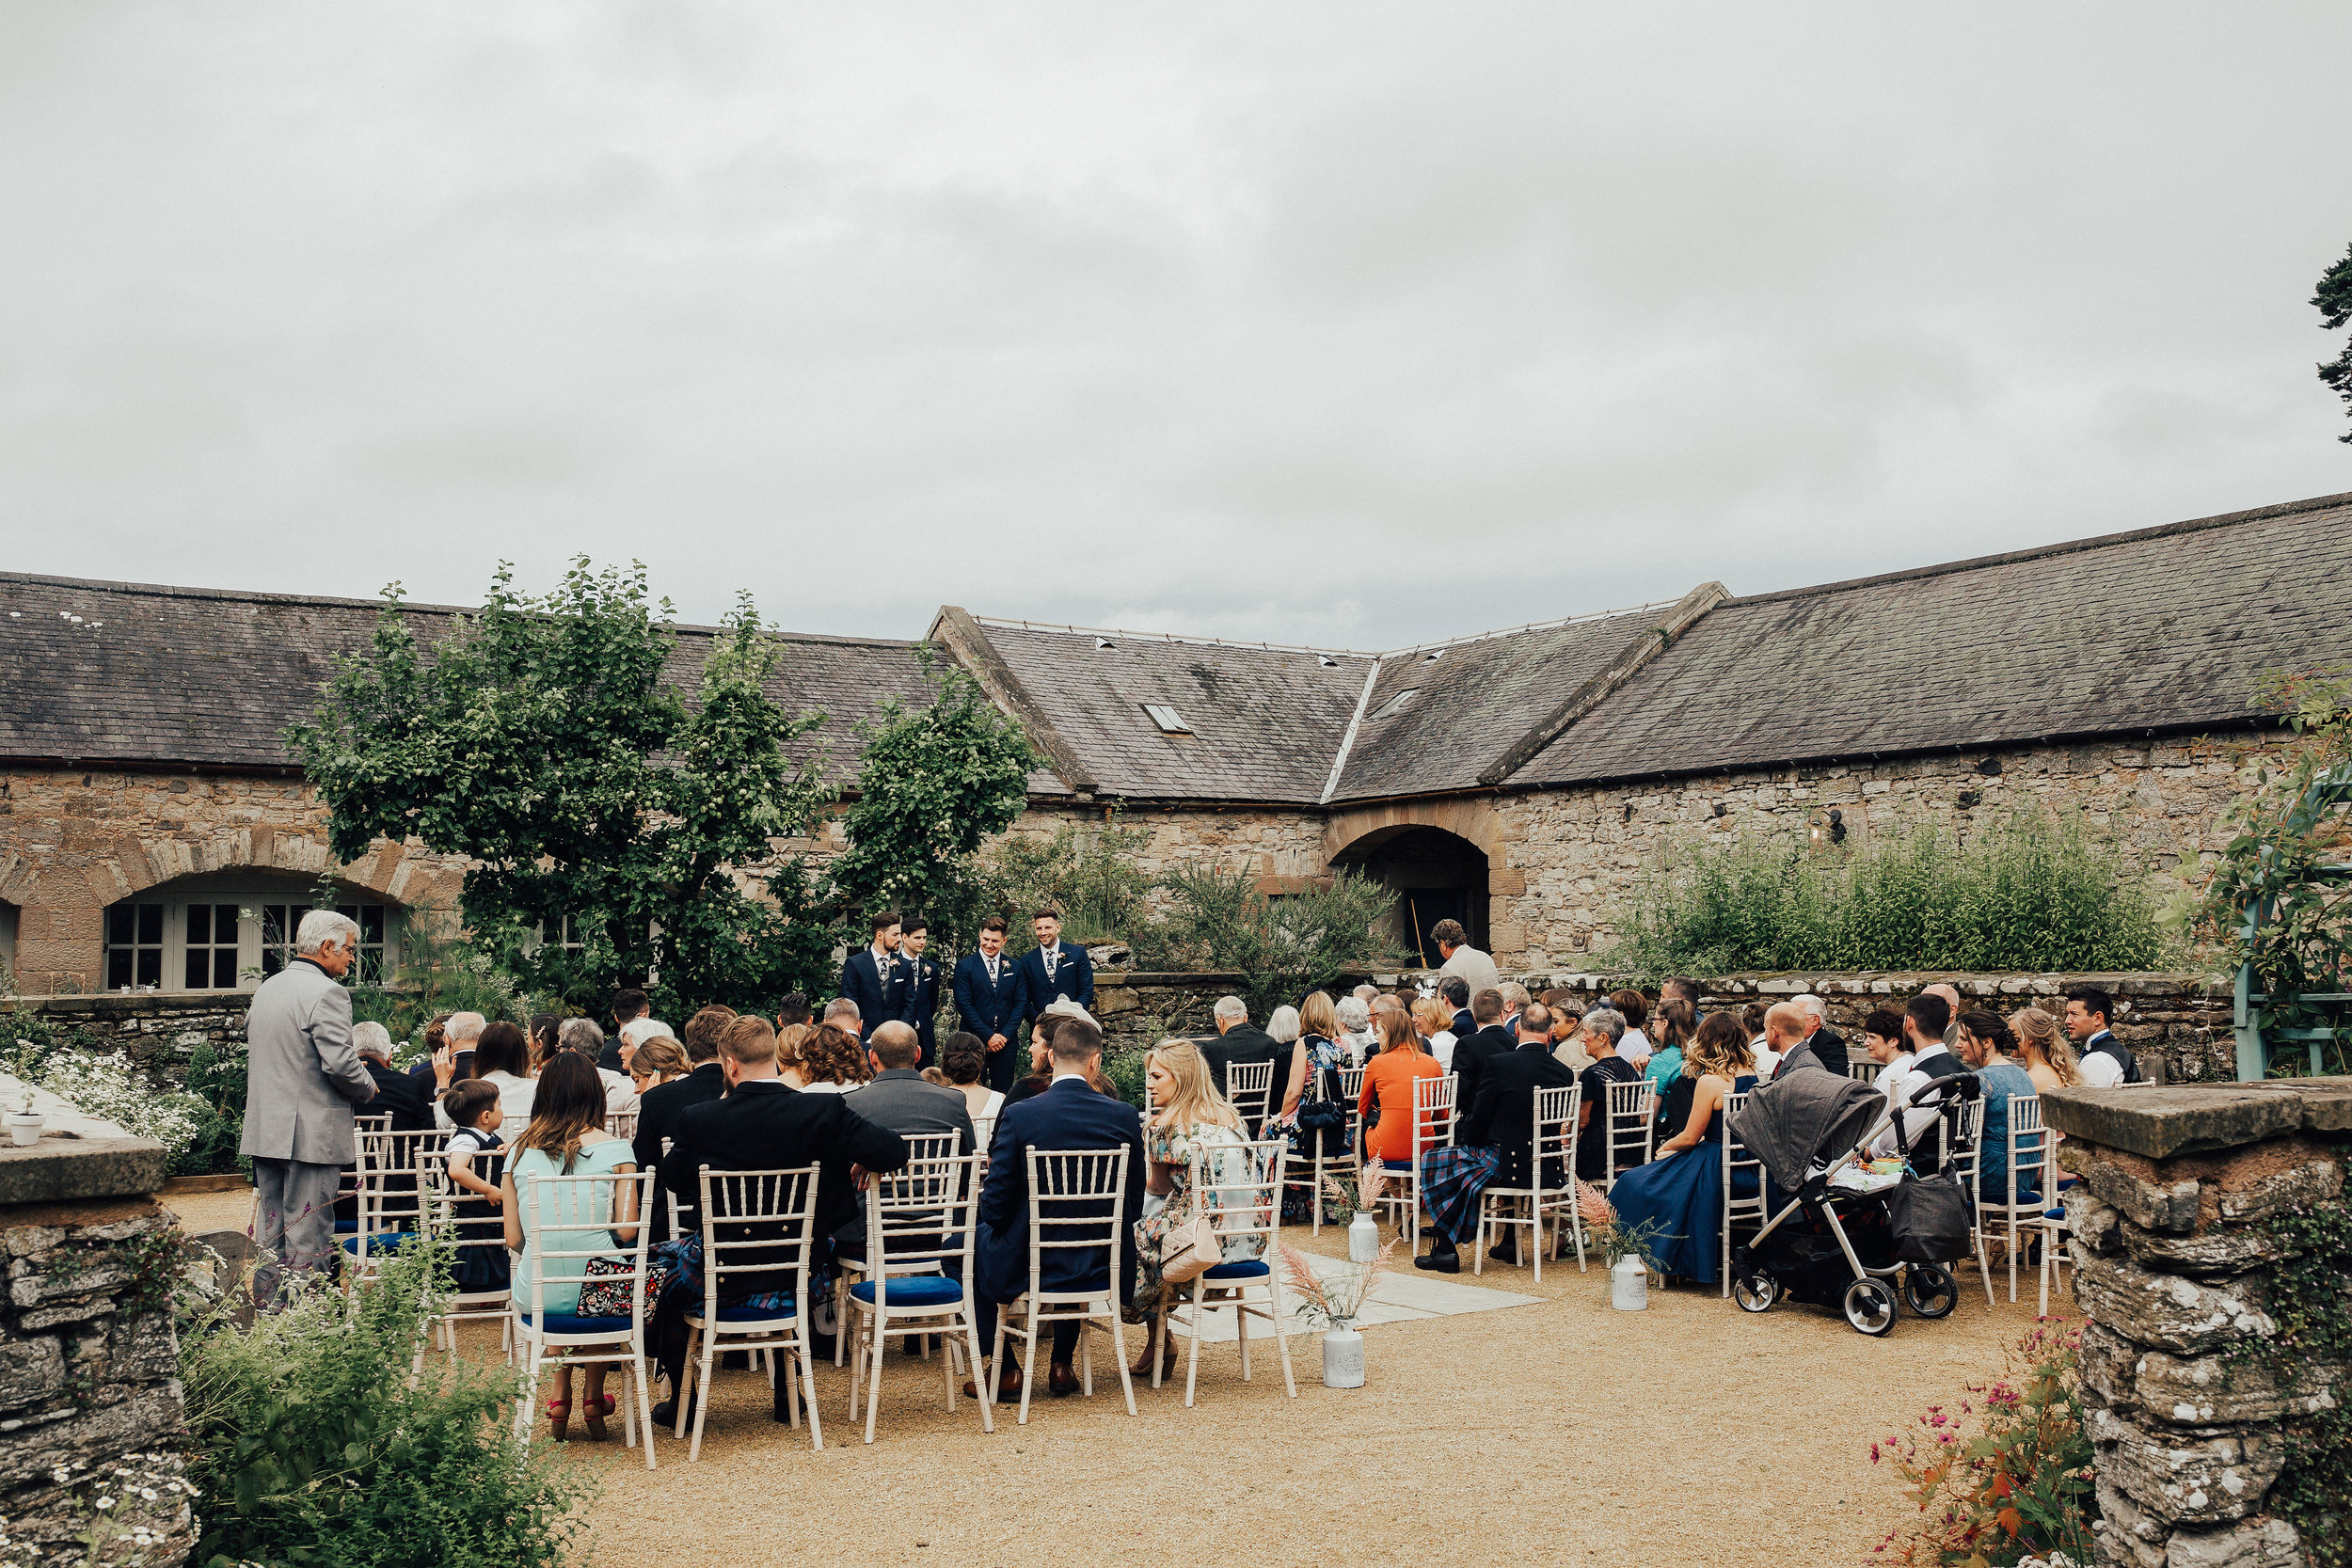 PJ_PHILLIPS_PHOTOGRAPHY_EDINBURGH_WEDDERBURN_BARNS_WEDDING_EDINBURGH_WEDDING_PHOTOGRAPHER_57.jpg